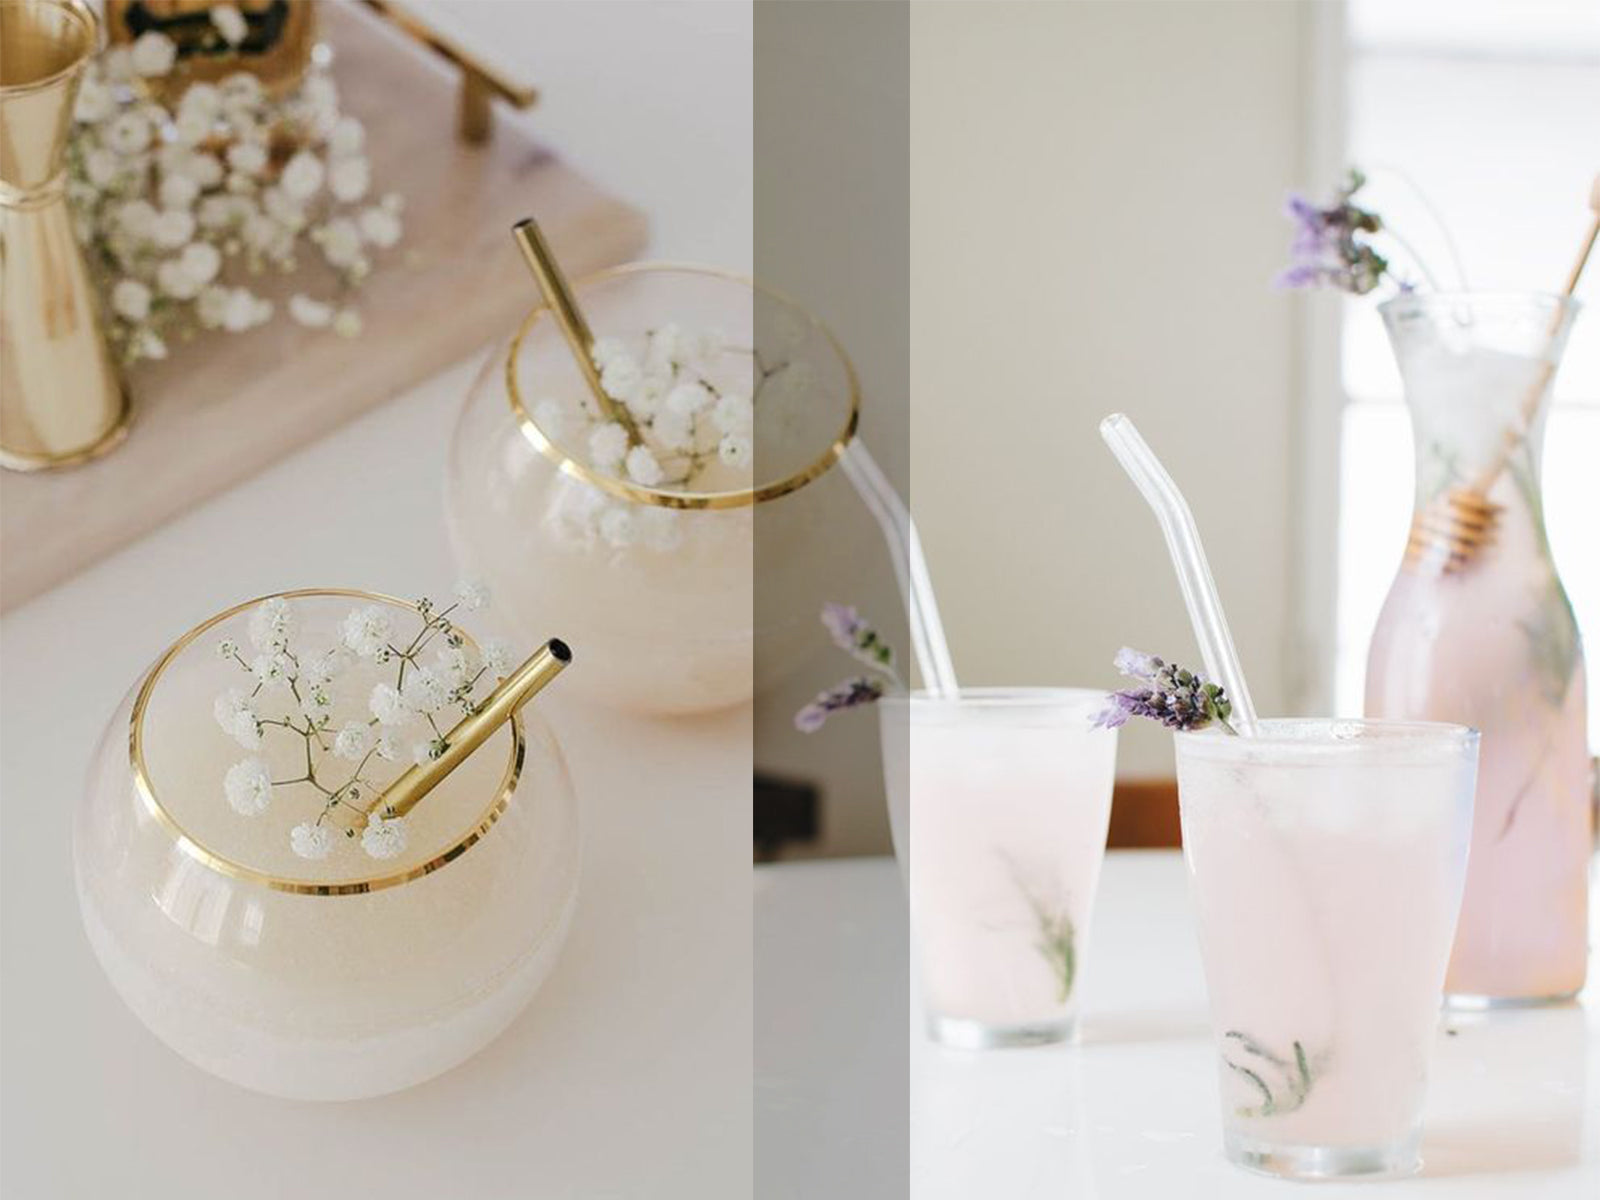 Glas oder metal straws are not only the more elegant but also more sustainable choice